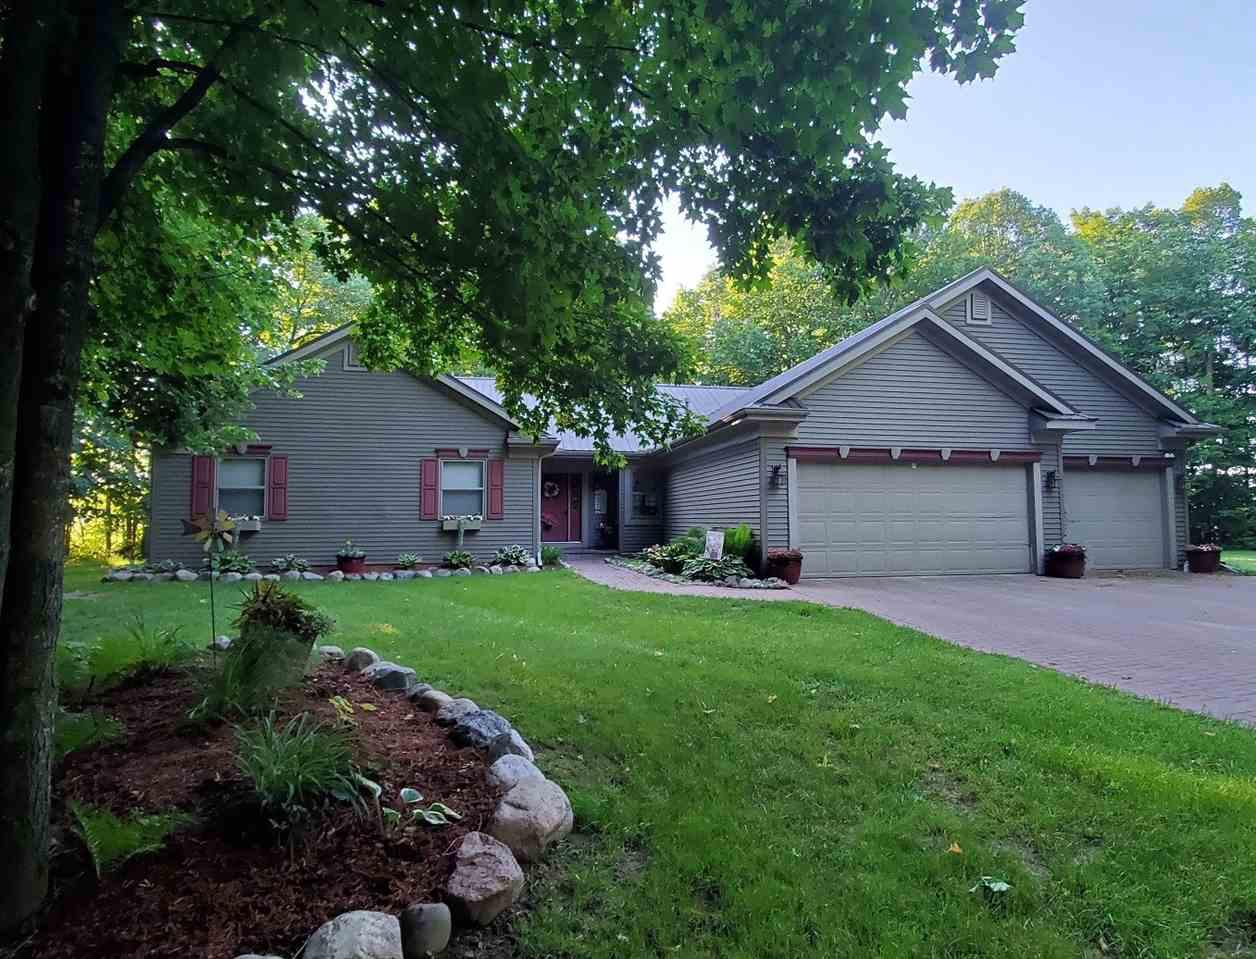 Wonderful privately located home only 1.5 miles from the city limits.  Large master bedroom, bathroom and closet, and large 2nd bedroom with walk in closet. Main floor has spacious rooms with hardwood flooring, including living room with wood fireplace, dining room, kitchen with dinette. Main floor laundry and half bath and back entry off the attached 3 car garage. Lower level has a spacious rec room and large bedroom. Very nice back patio area off the living room.,Newer metal roof! ALL this only a minute or two from town. COME SEE!!